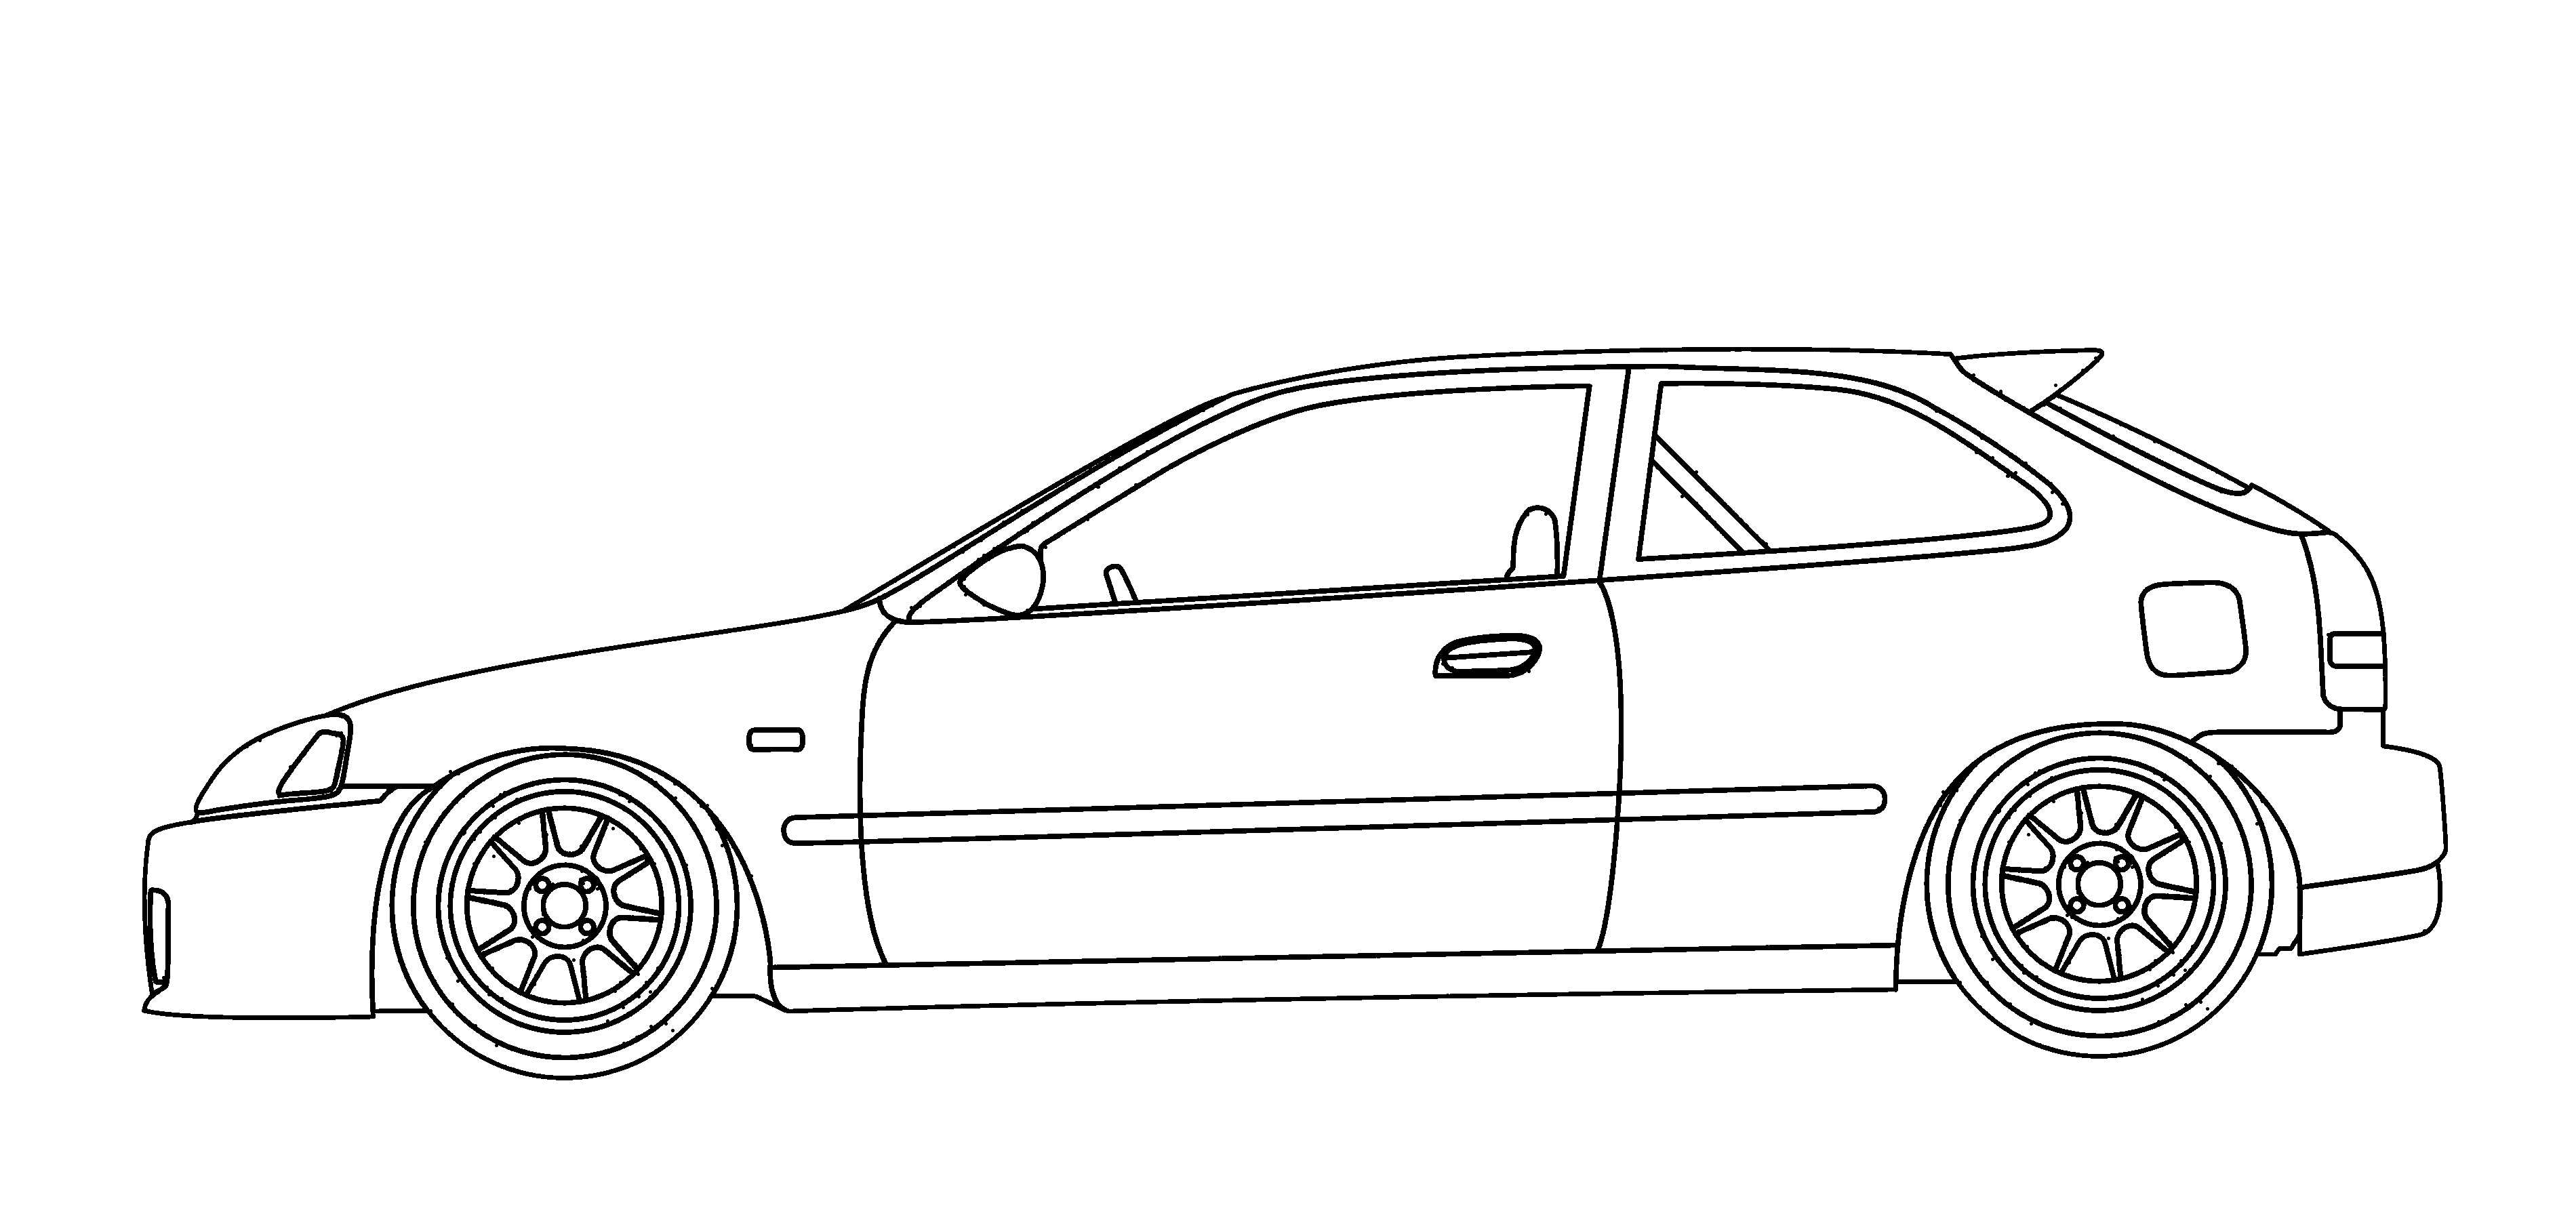 20170914064340 coloring Pages Honda Cars likewise Official Ef Front Brake Thread 2560687 additionally 800579 Drawing S2k as well 3p7eb Starter Relay Located Honda Accord 93 in addition Vw Golf 02a. on honda civic type r